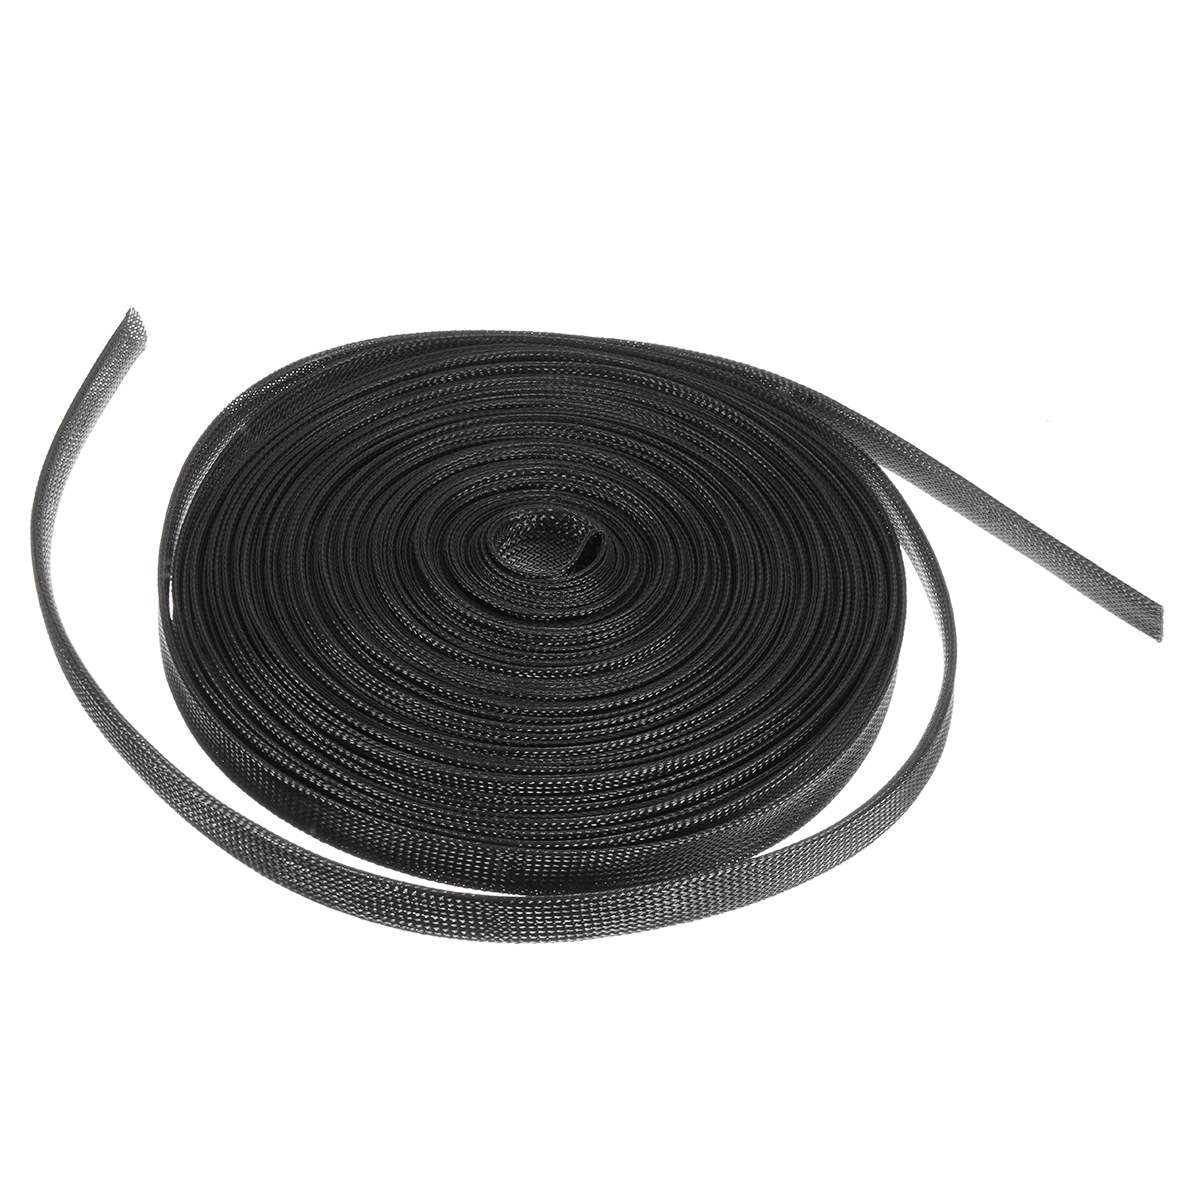 30m Black Nylon Expandable Sheathing Tubing Wire Cable Sleeving Insulation Tight Braided Loom 8/10/12/15/20mm For Wrapping Cable30m Black Nylon Expandable Sheathing Tubing Wire Cable Sleeving Insulation Tight Braided Loom 8/10/12/15/20mm For Wrapping Cable